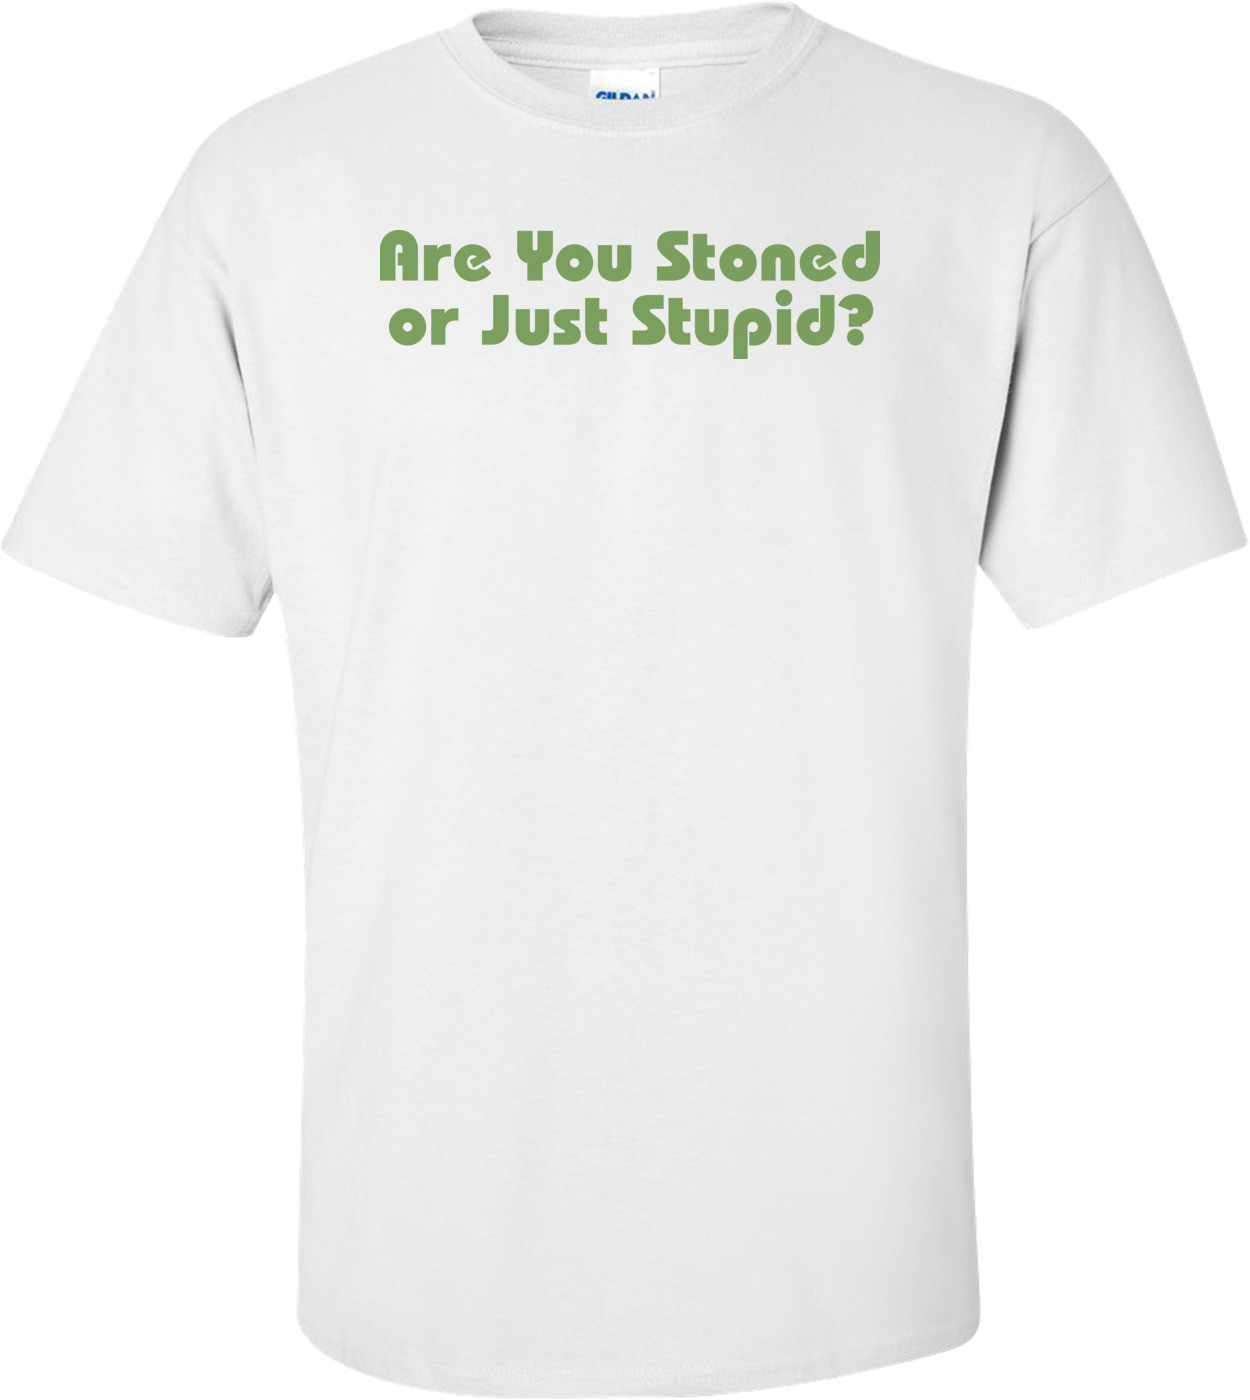 Are You Stoned Or Just Stupid T-shirt